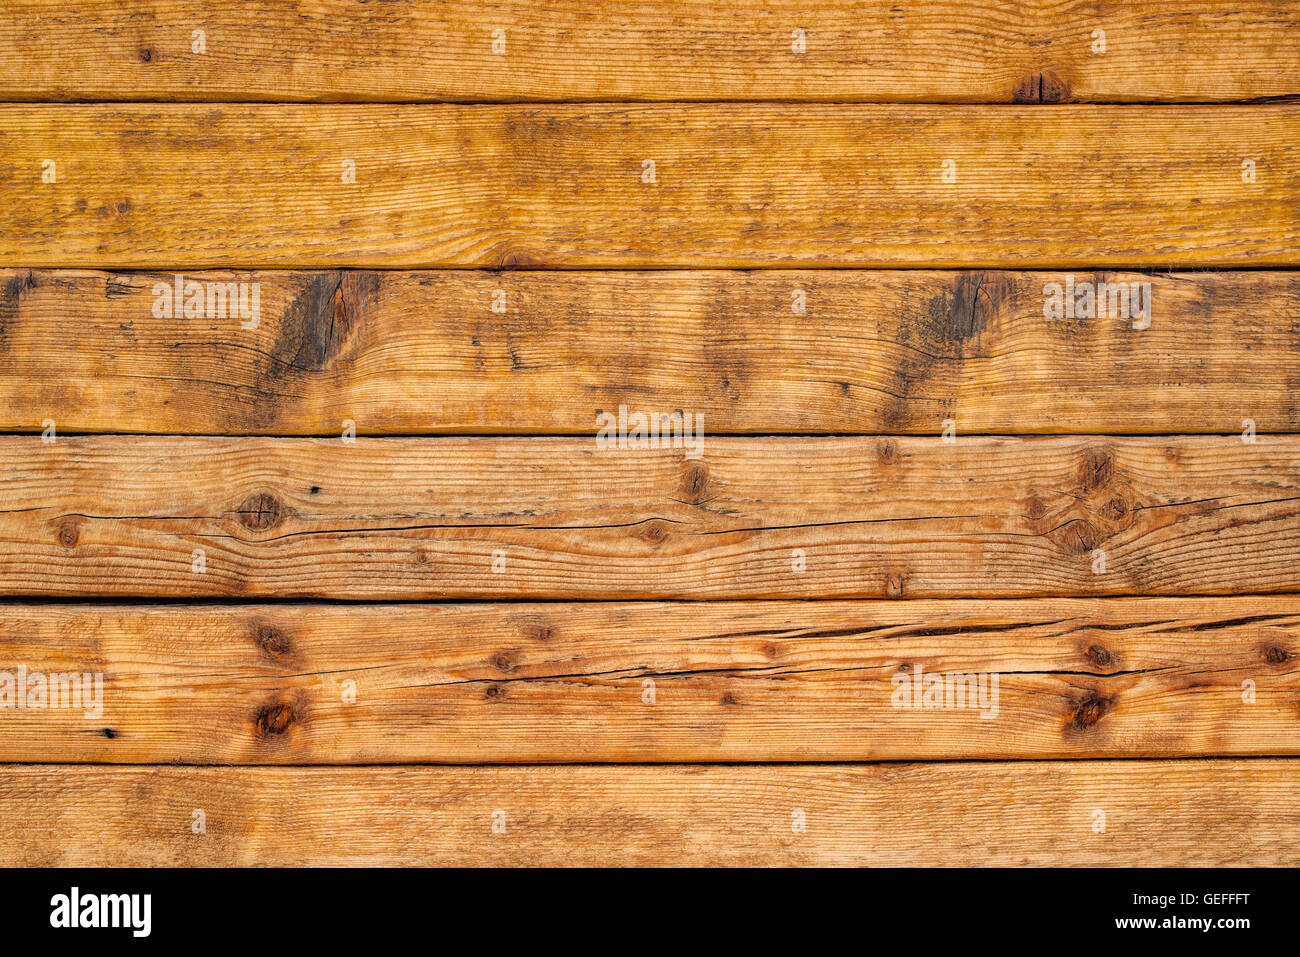 Wooden planks as background, textured surface of rustic wood boards - Stock Image